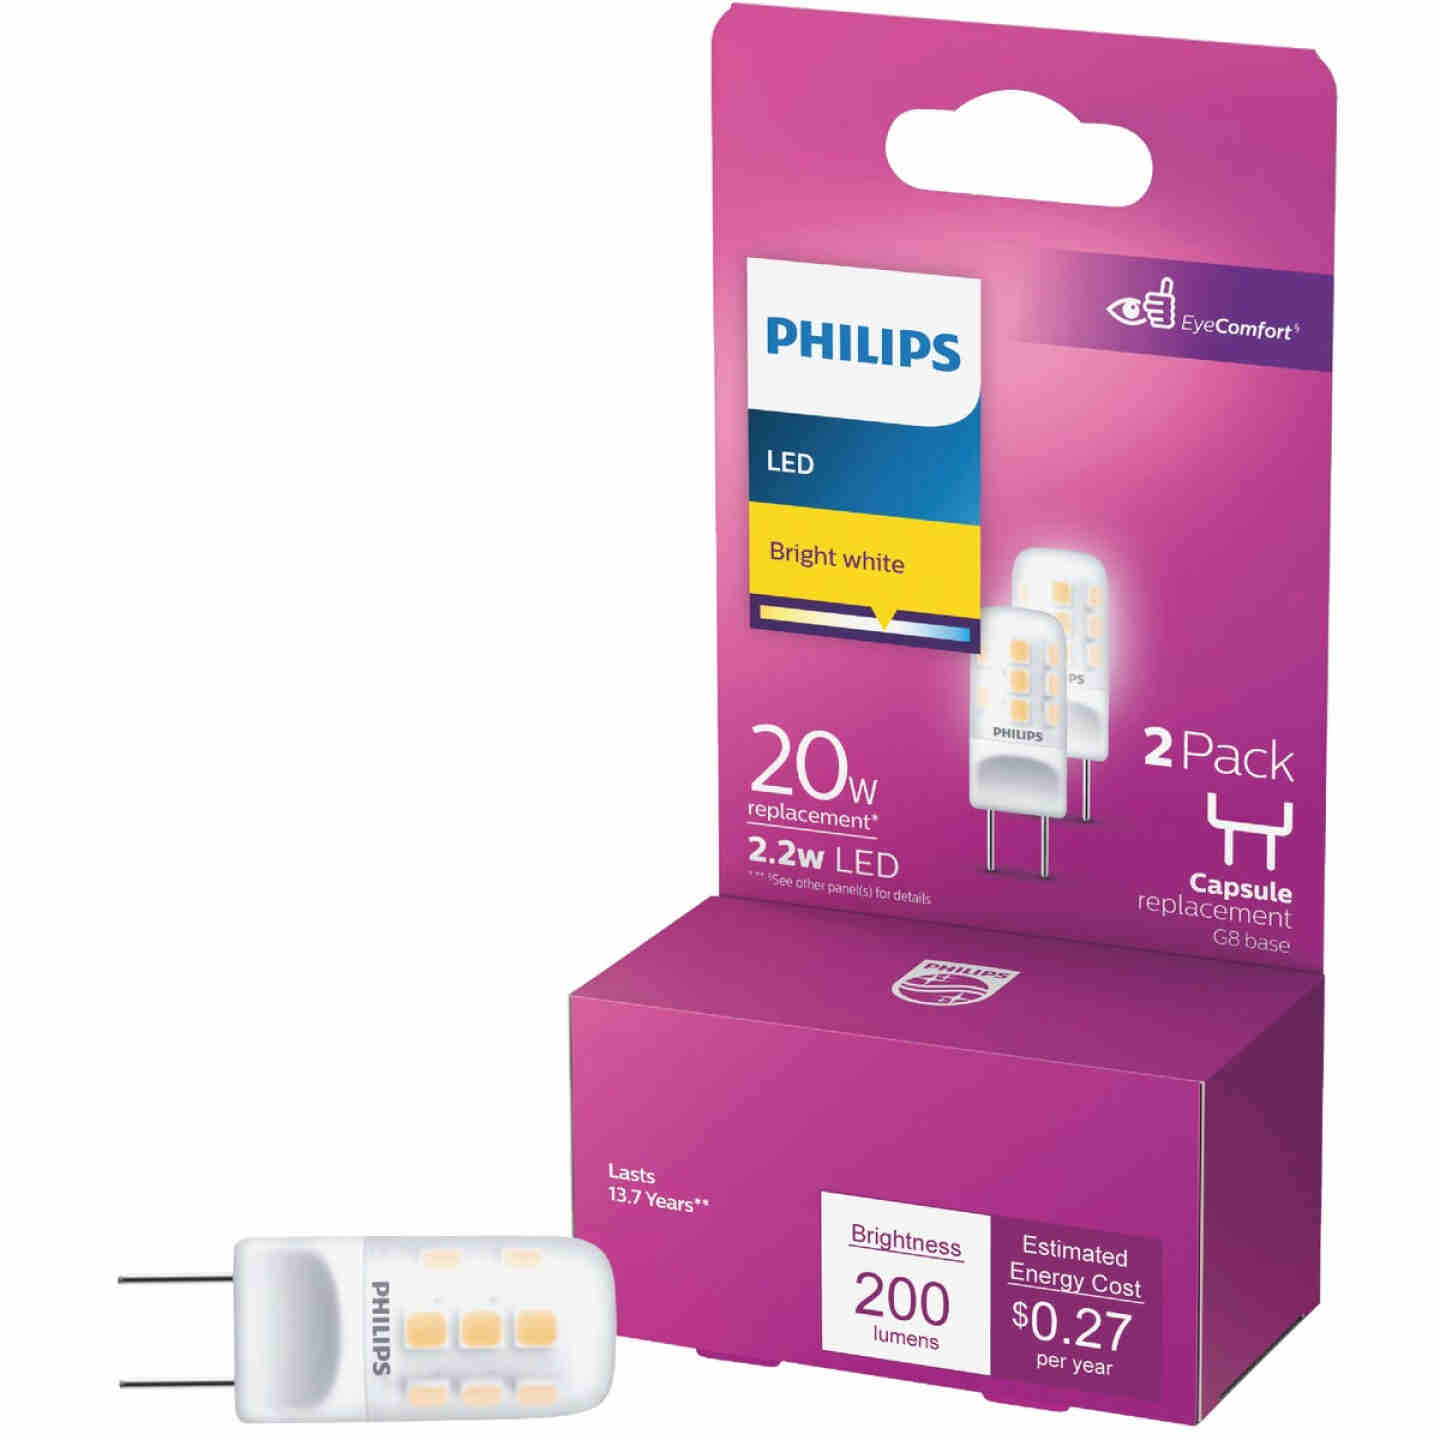 Philips 20W Equivalent T4 G8 Bi-Pin Base LED Special Purpose Light Bulb (2-Pack) Image 1